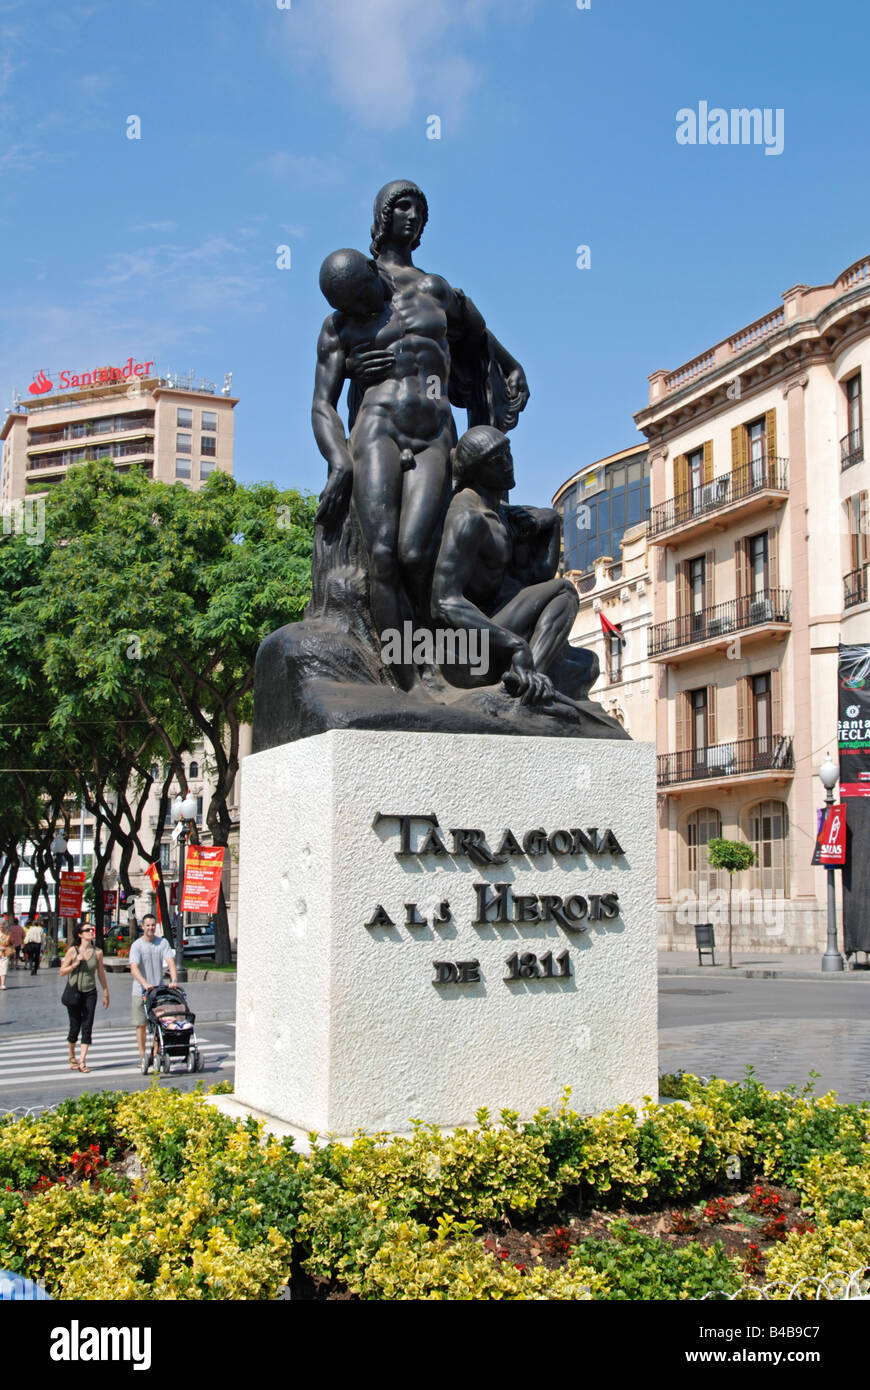 the heroes memorial statue on rambla nova, tarragona, to the heroes of the siege of tarragona by the french in 1811 - Stock Image